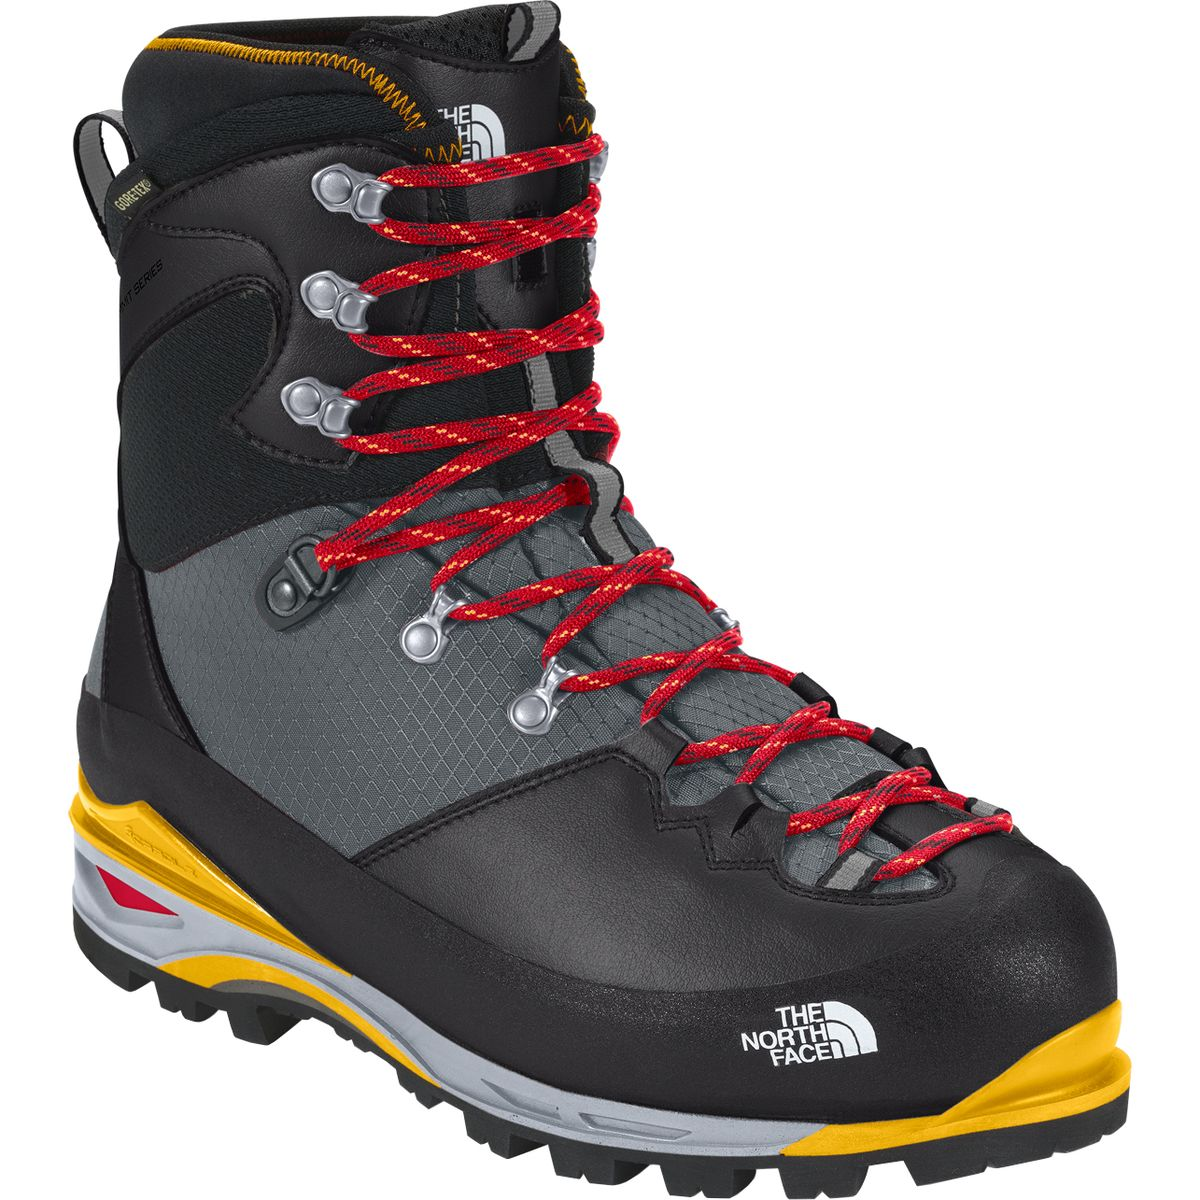 The North Face Verto S6k Glacier GTX